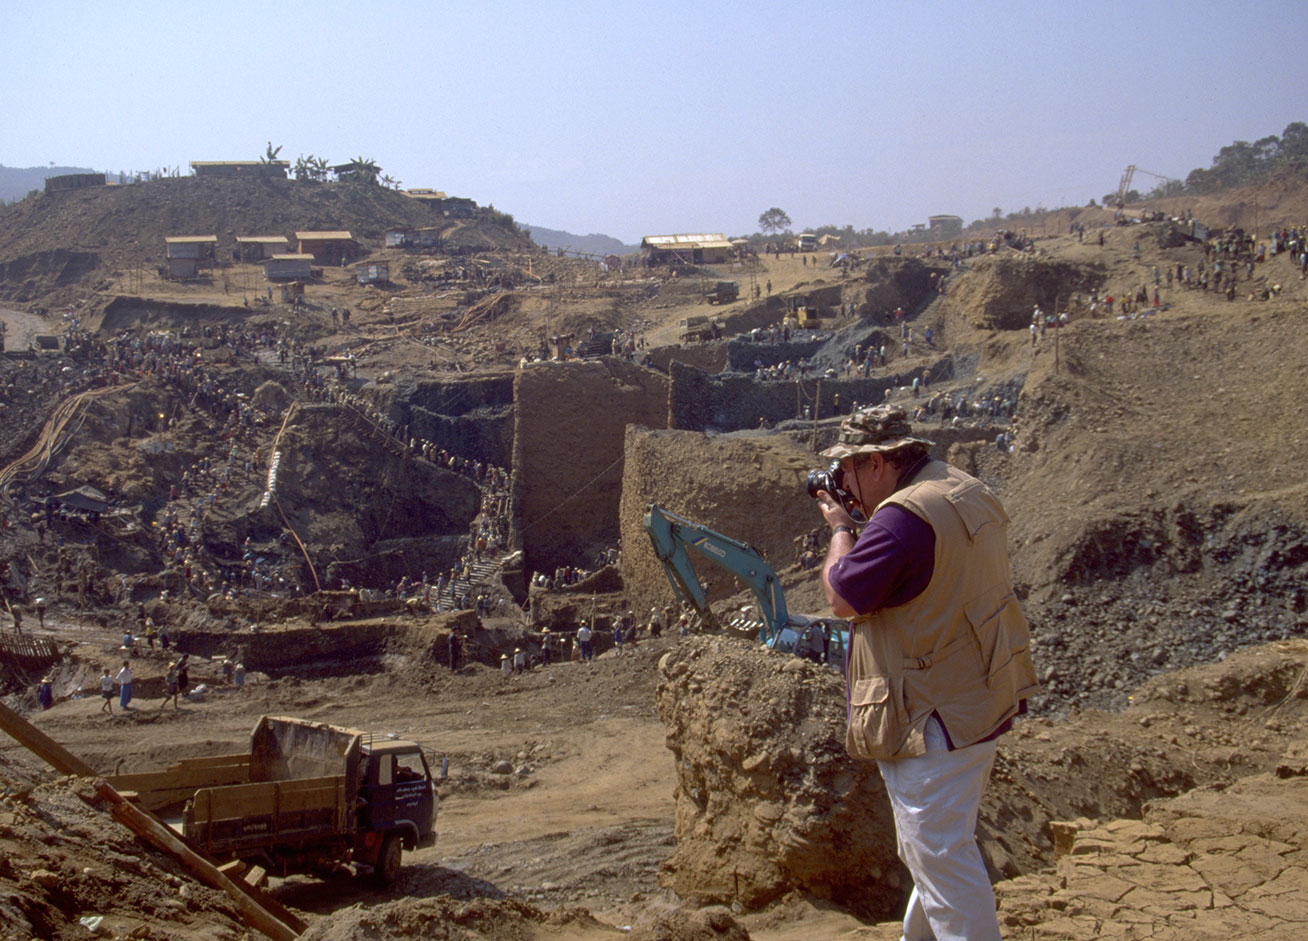 """Fred Ward engaged in his life's work, Hpakangyi jade mine, 1997.  See this   article  on the environmental devastation of jade mining posted on  his Friends of Jade website. For a detailed look at jade mining see """"  Heaven and Hell: The Quest for Jade in Upper Burma  """" by Richard W. Hughes and Fred Ward. (Photo: Richard W. Hughes)"""